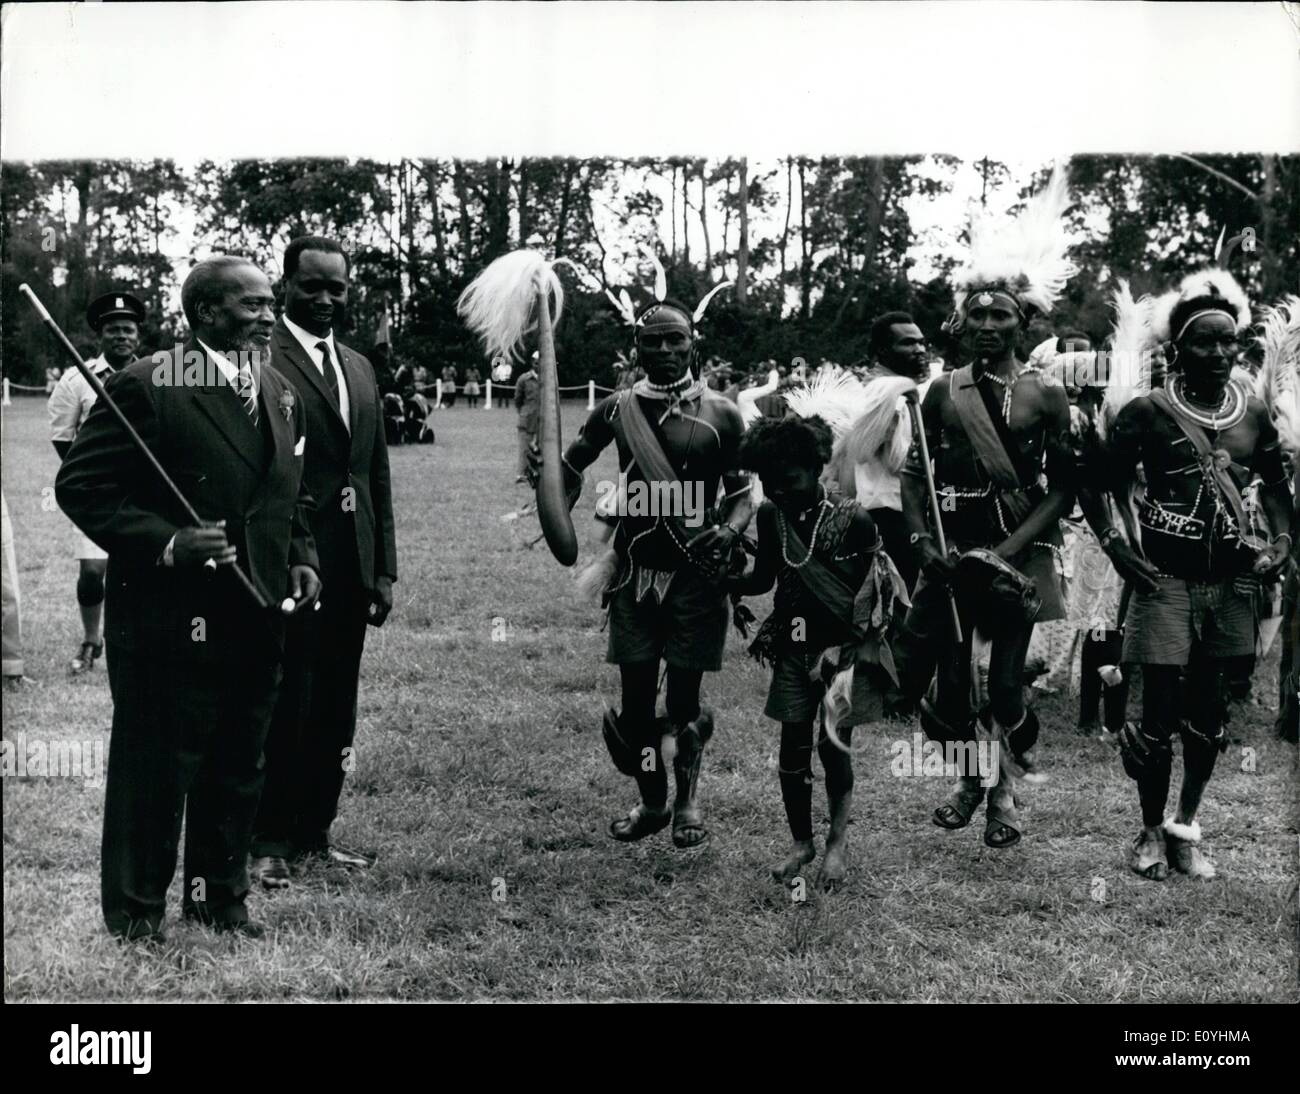 Jun. 06, 1970 - Kenya celebrates 7th. Anniversary of self government.: Kenya celebrated its 7th anniversary of Self Government on June 3rd. President Kenyatta, on left, is seen with a group of tribal dancers in the grounds of State House, Nairobi when President Kenyatta gave a Garden Party attended by many thousands of Kenyans. Kenya's Vice President, Mr. Moi, joined President Kenyatta in the dance with the tribal dancers. This was to mark the end of Madaraka Day celebrations in Kenya. - Stock Image